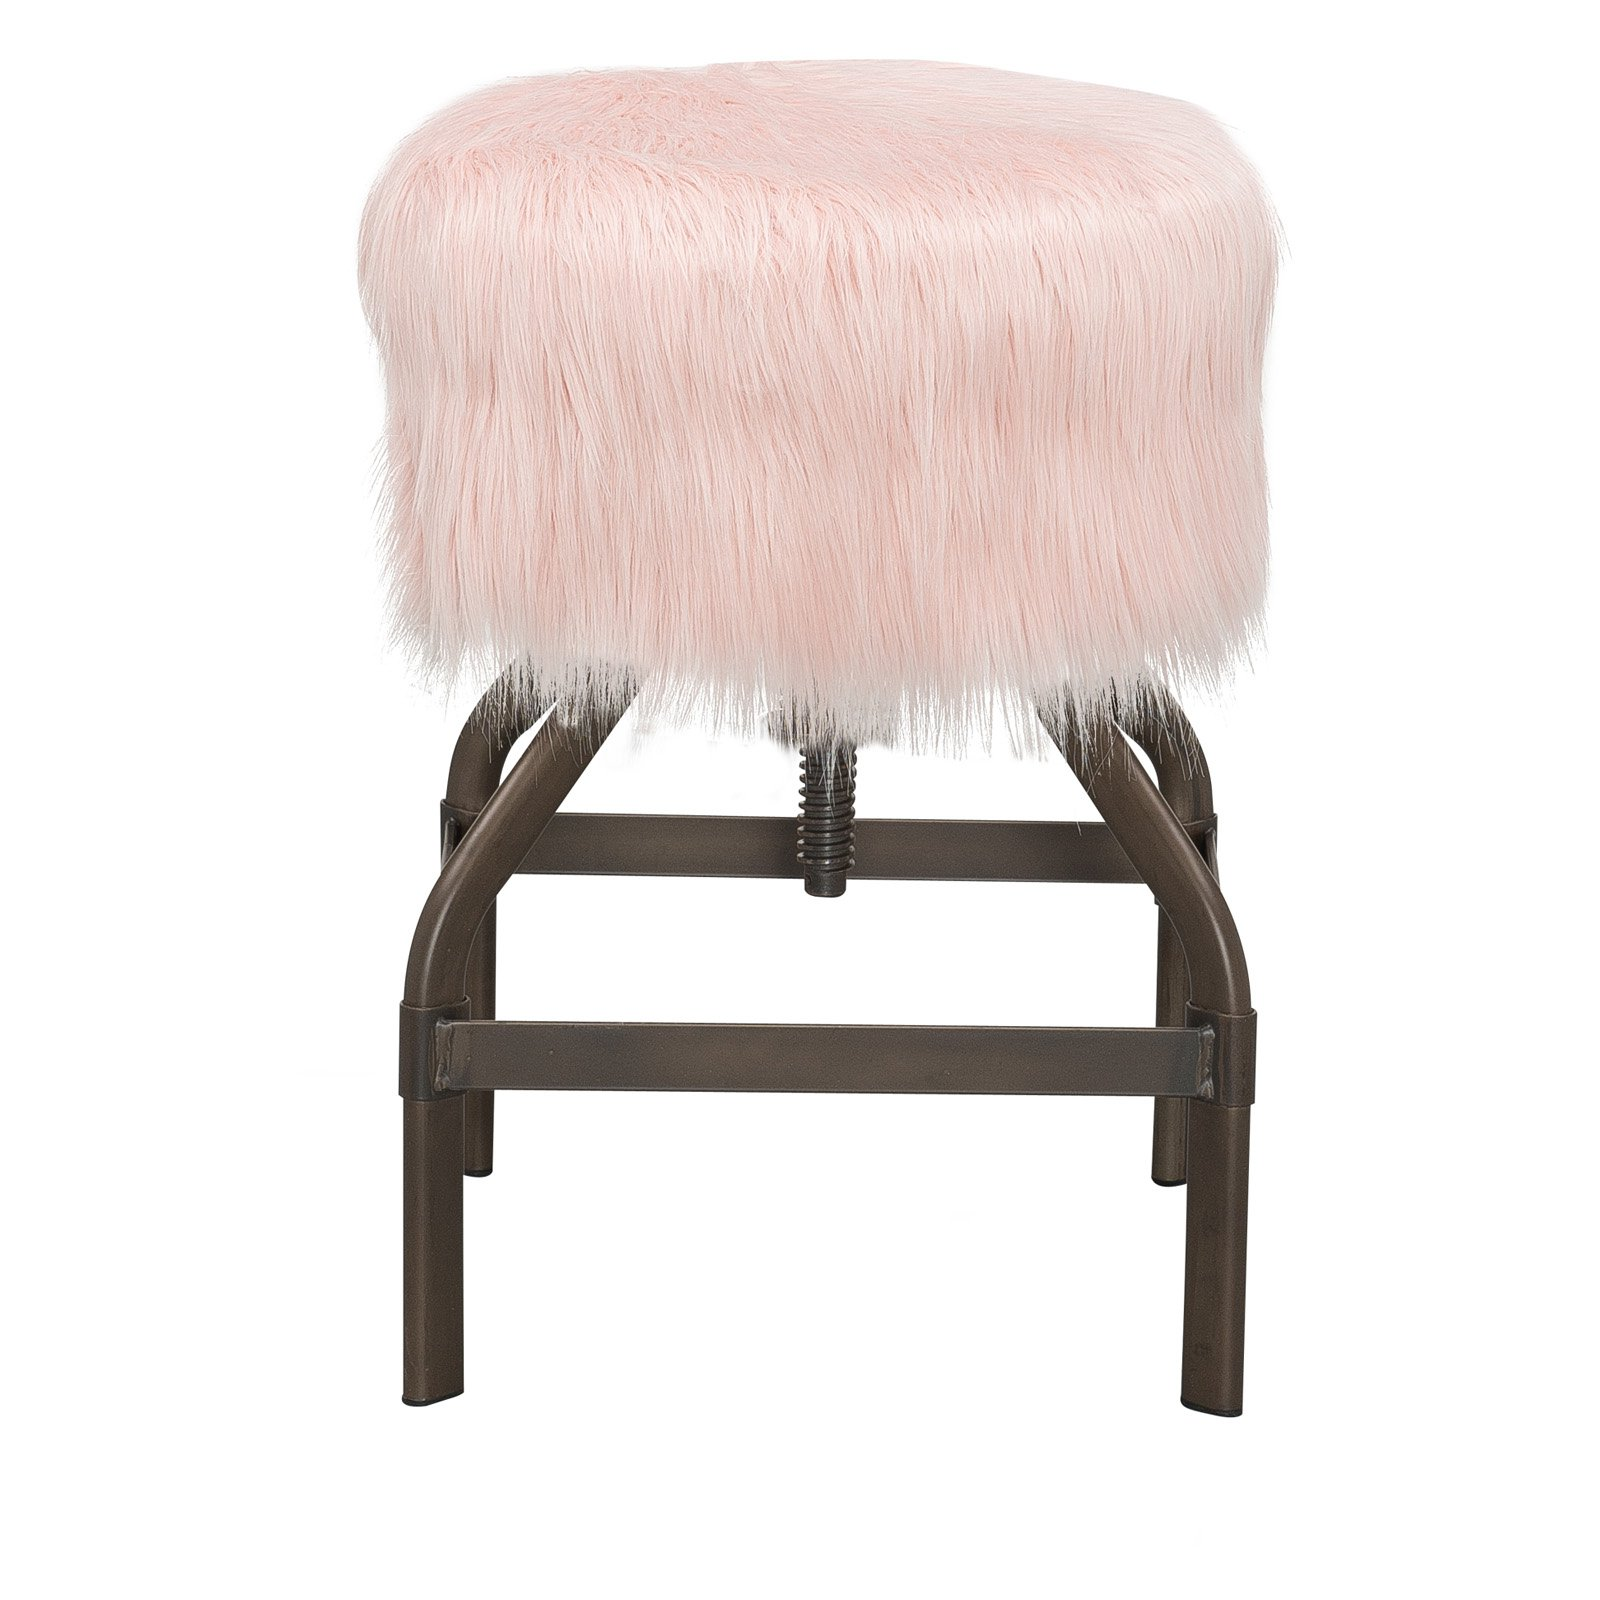 Adjustable Screw Top Stool, Metal With Faux Pink Fur